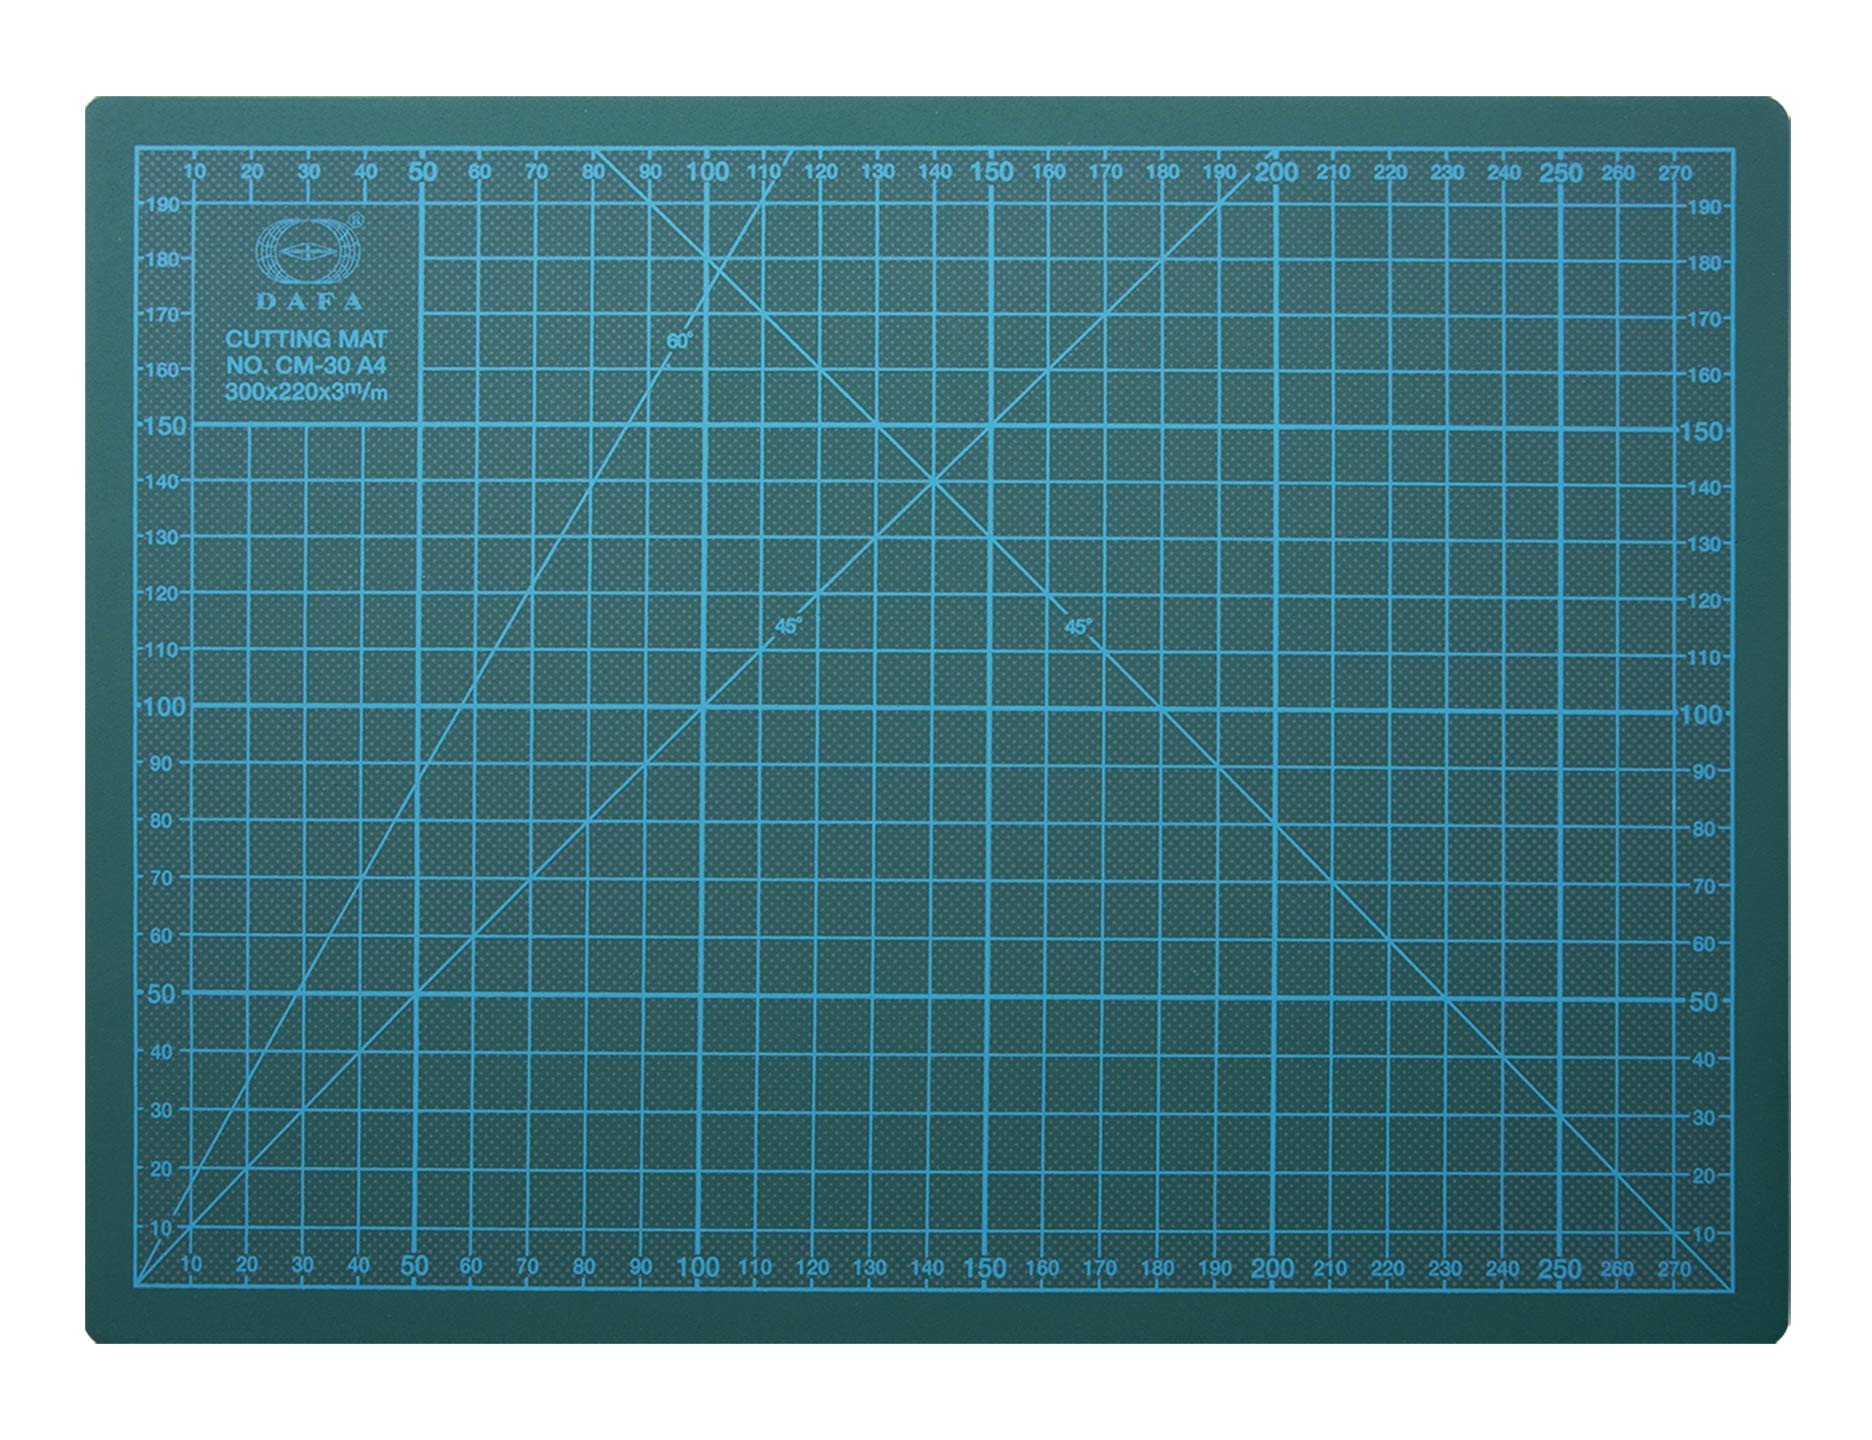 DAFA Professional 36'' x 24'' Self-Healing, Double-Sided Cutting Mat, Rotary Blade Compatible, (36x24), (24x18), (18x12), (12x9) Sizes, for Sewing, Quilting, Arts & Crafts by DAFA (Image #1)